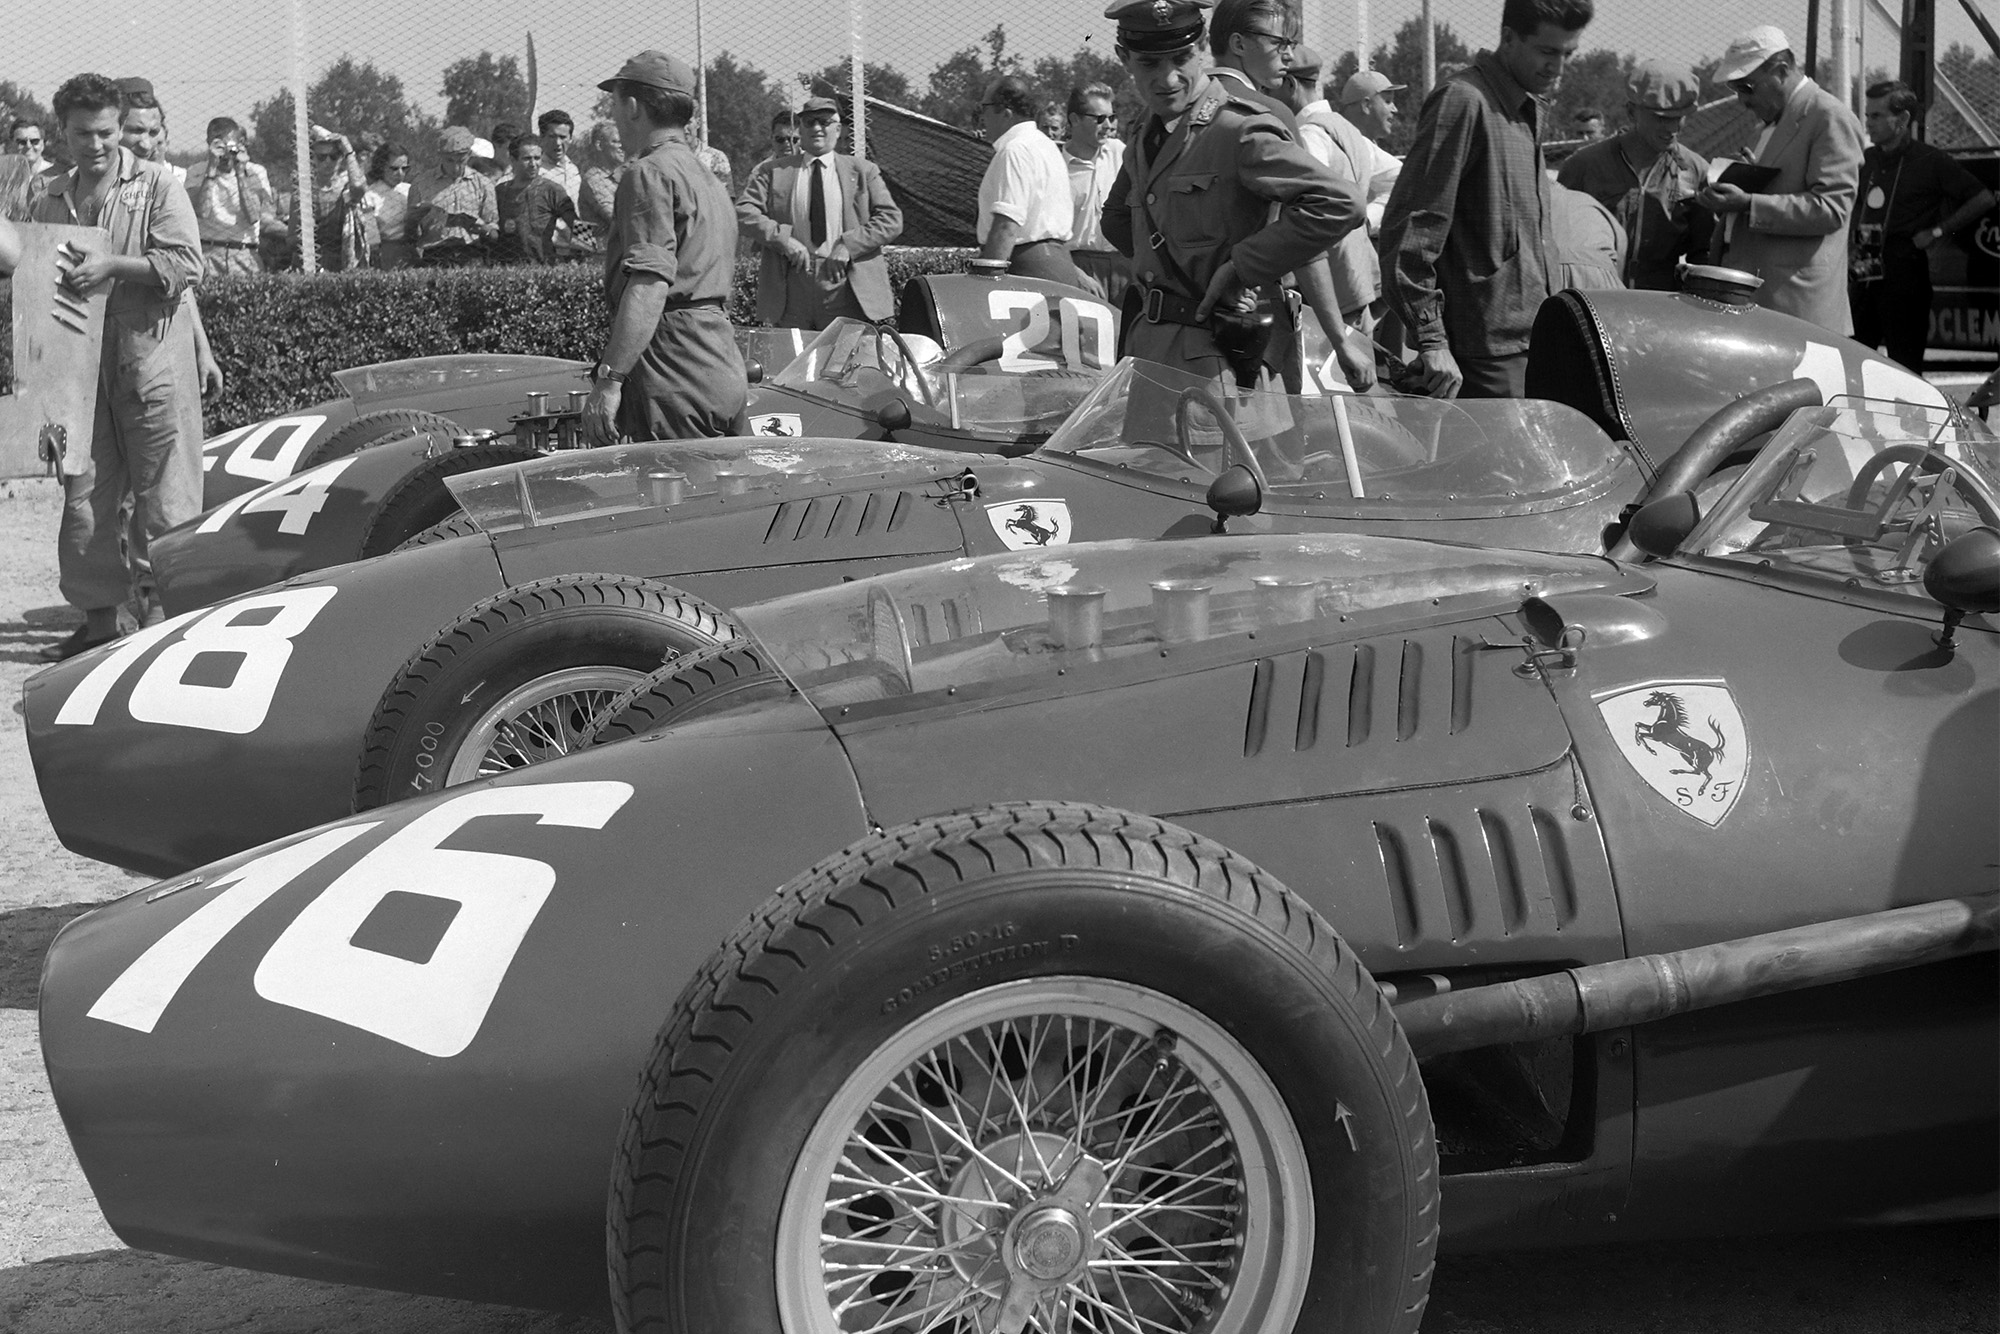 The Ferraris line-up before the race